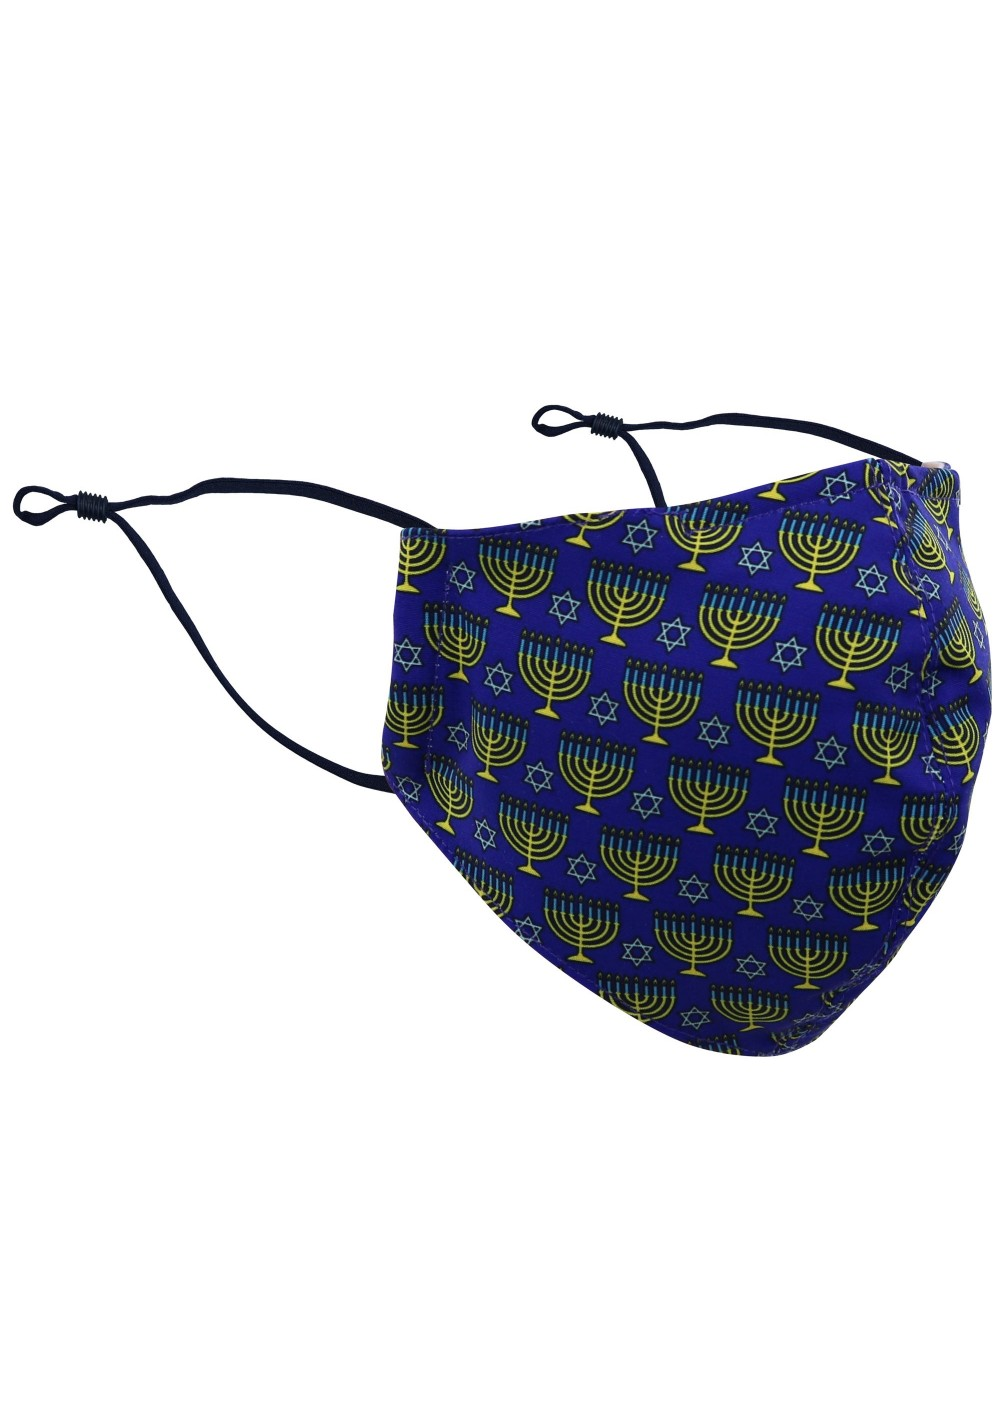 Hanukkah Print Face Mask in Blue and Gold